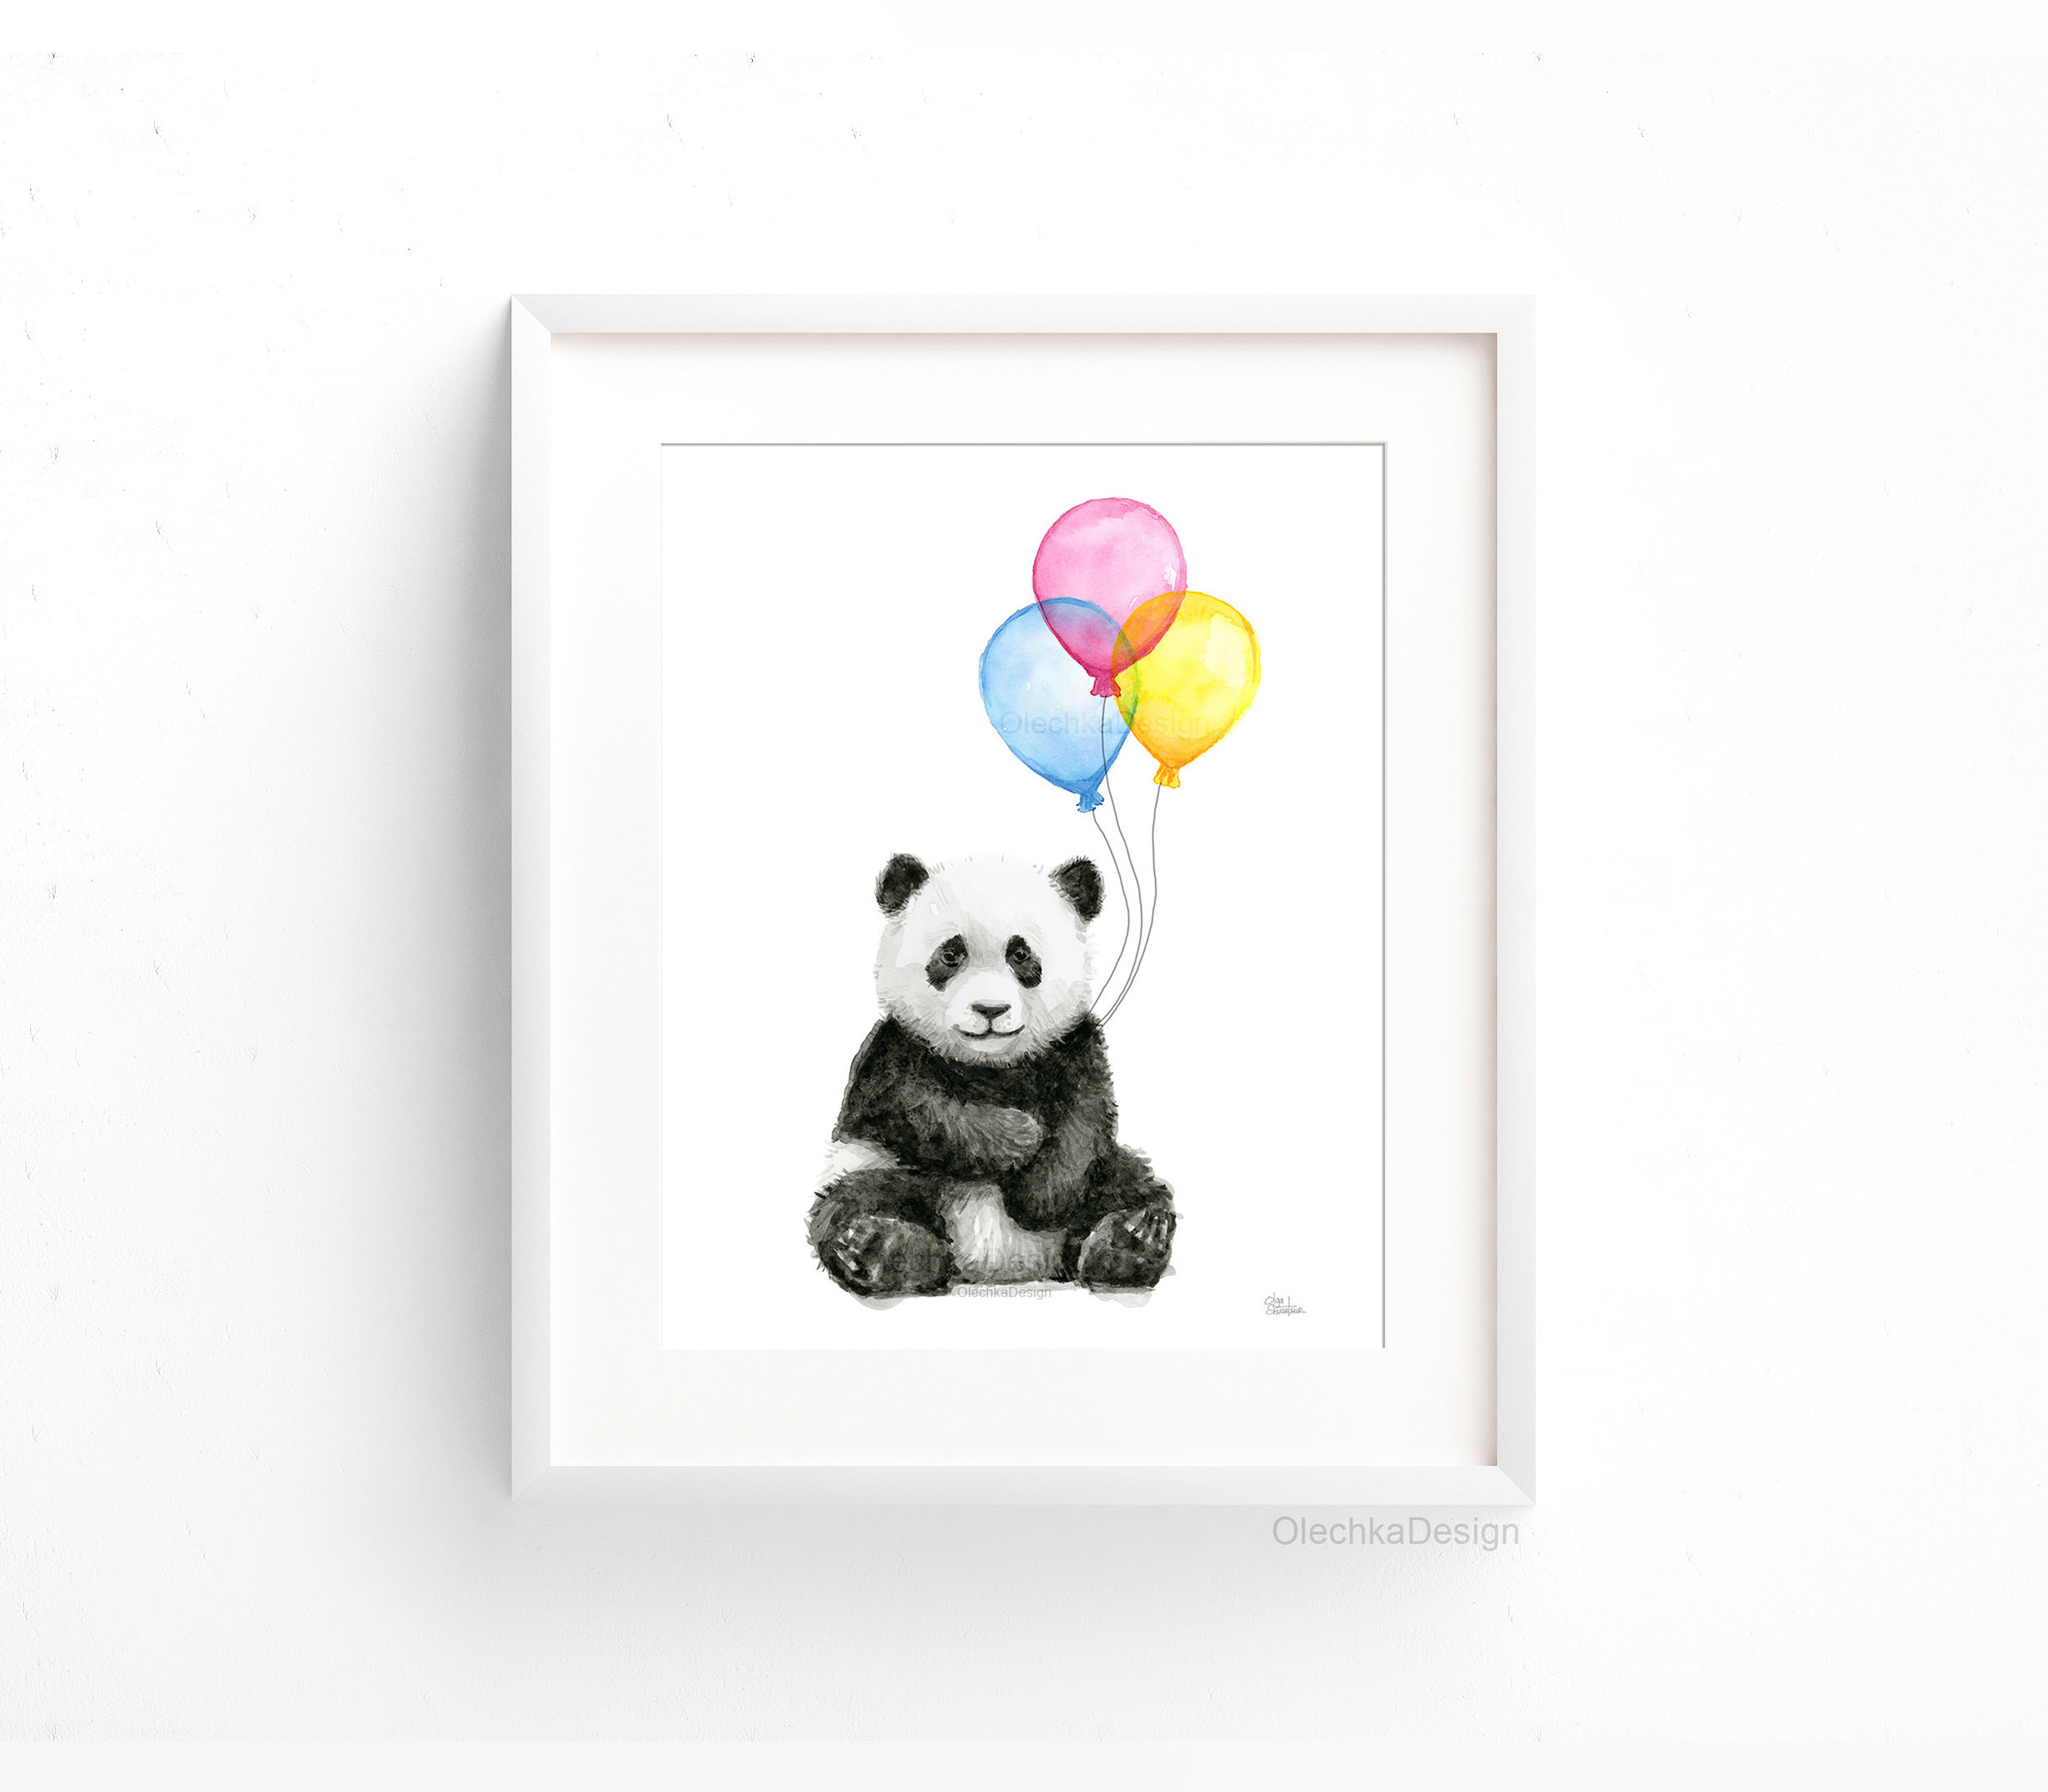 panda-watercolor-balloons-baby-animals-nursery-print